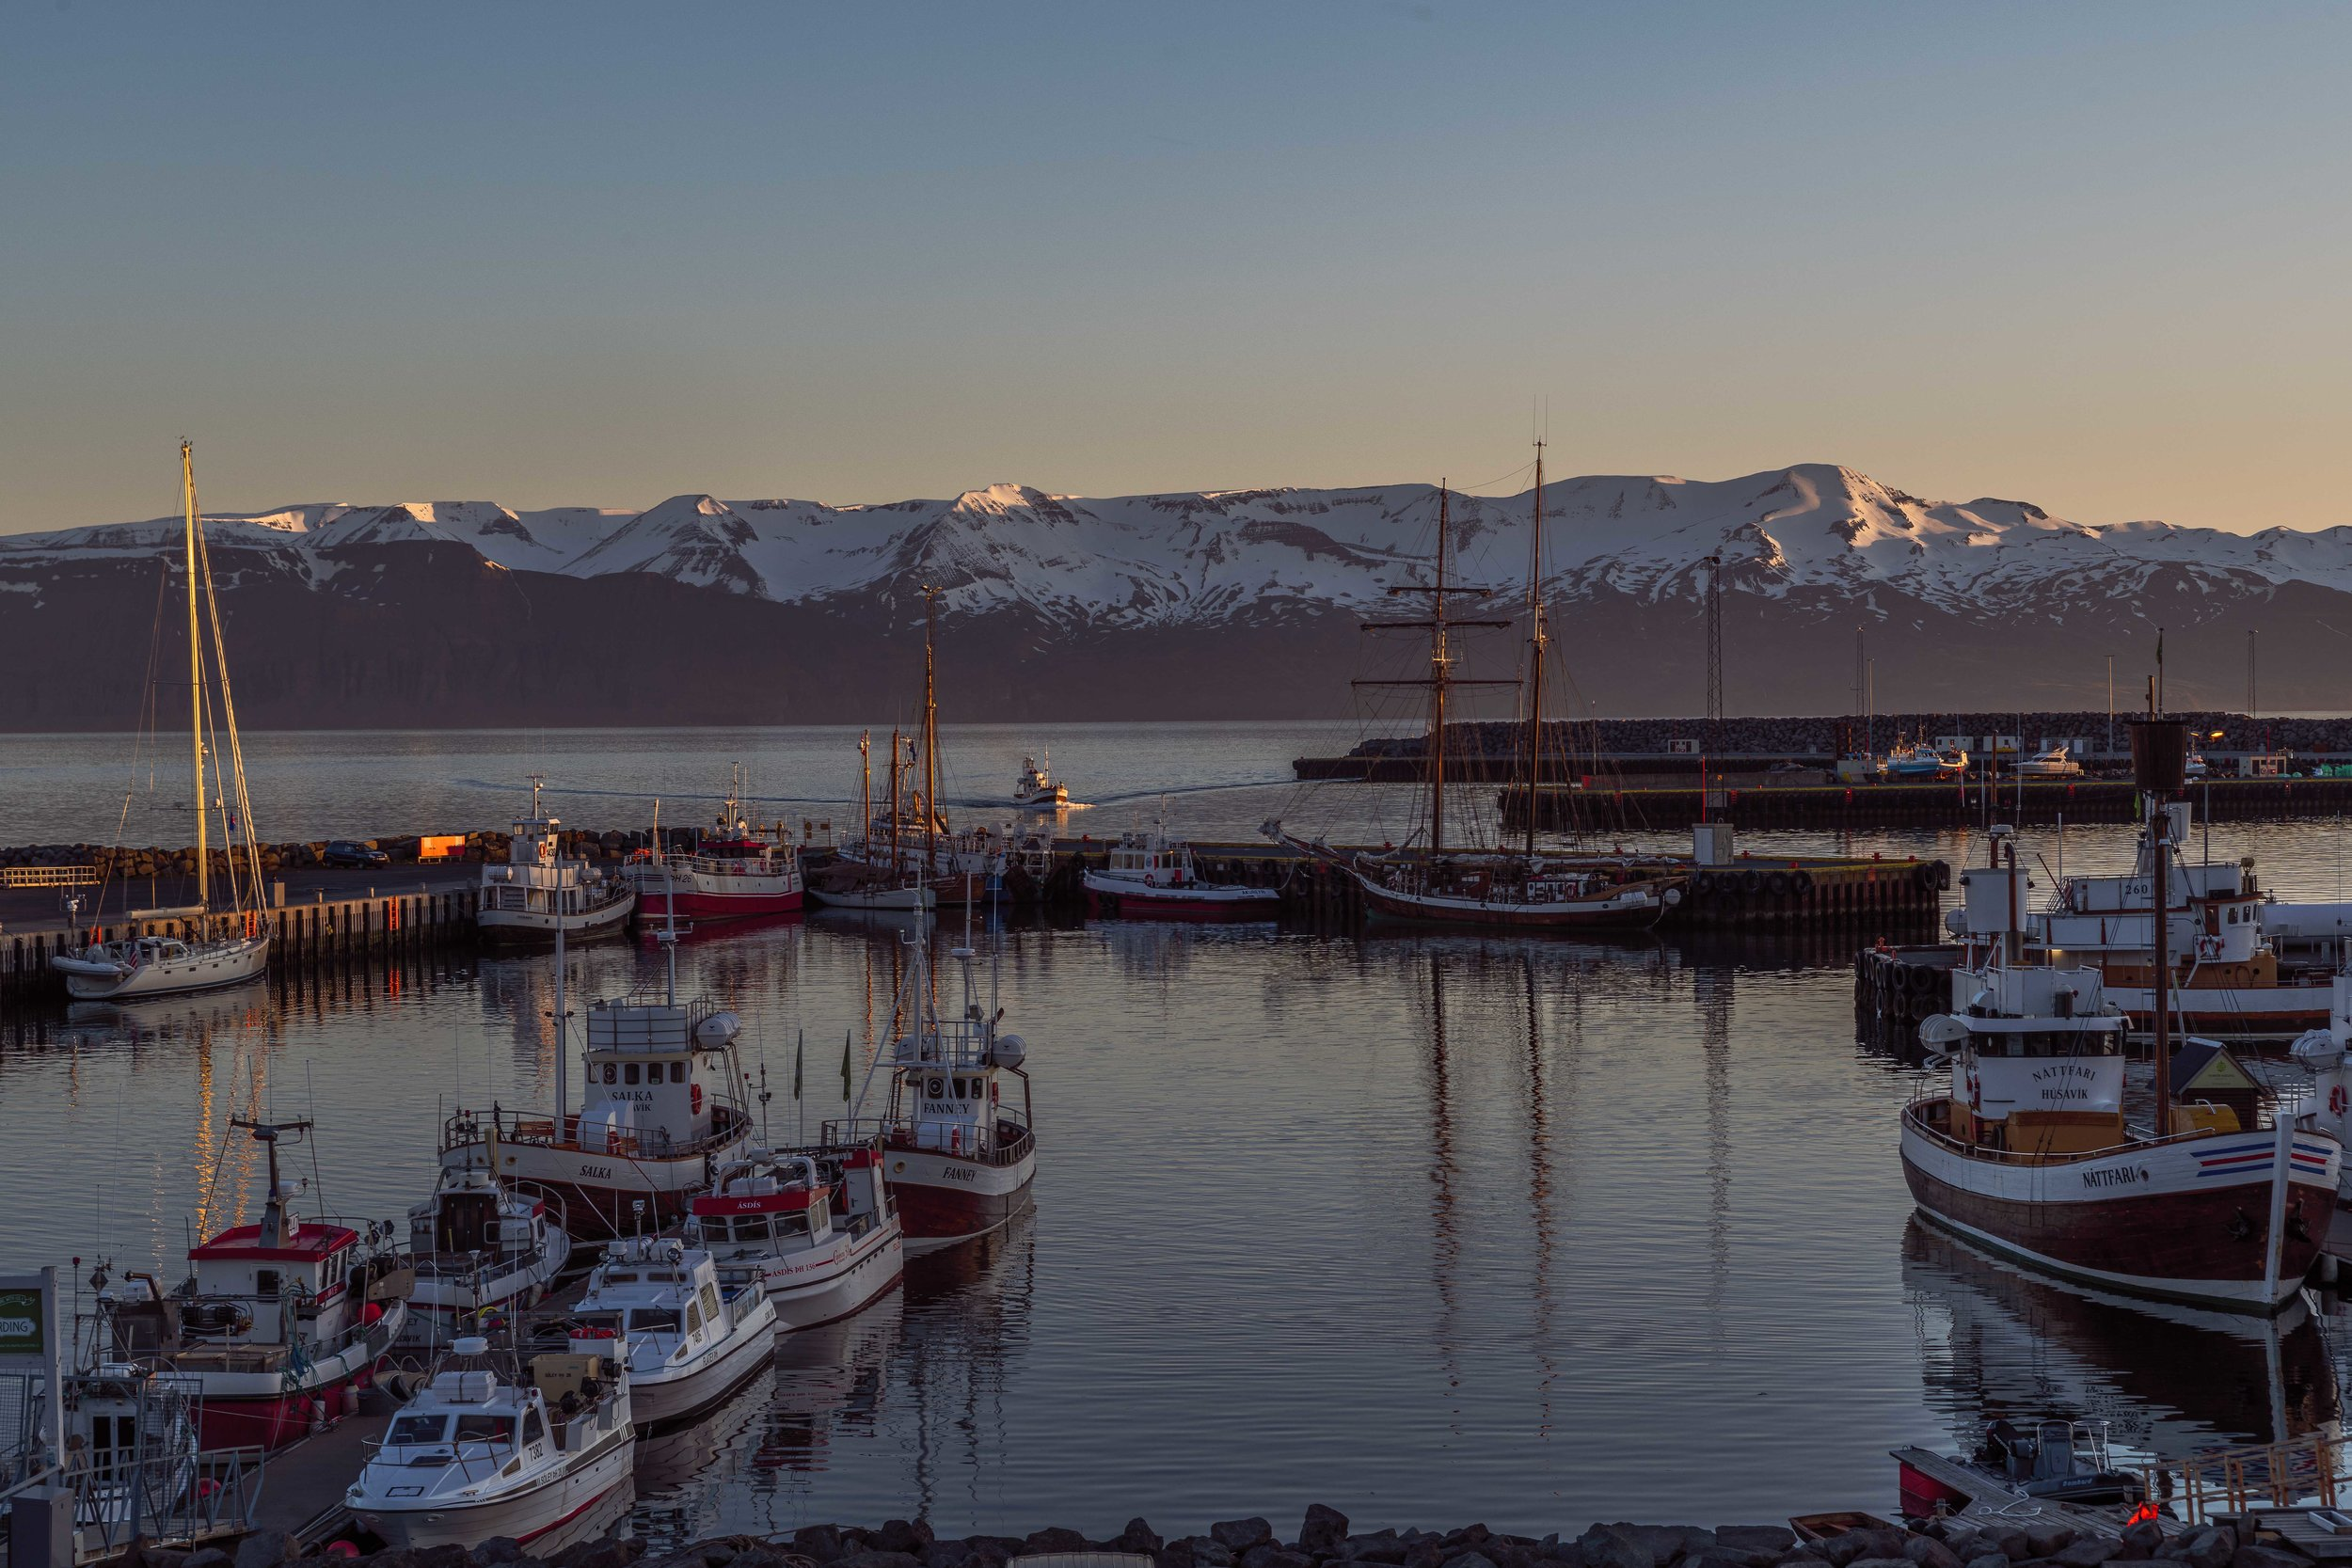 A great sunset view of the port at Húsavík